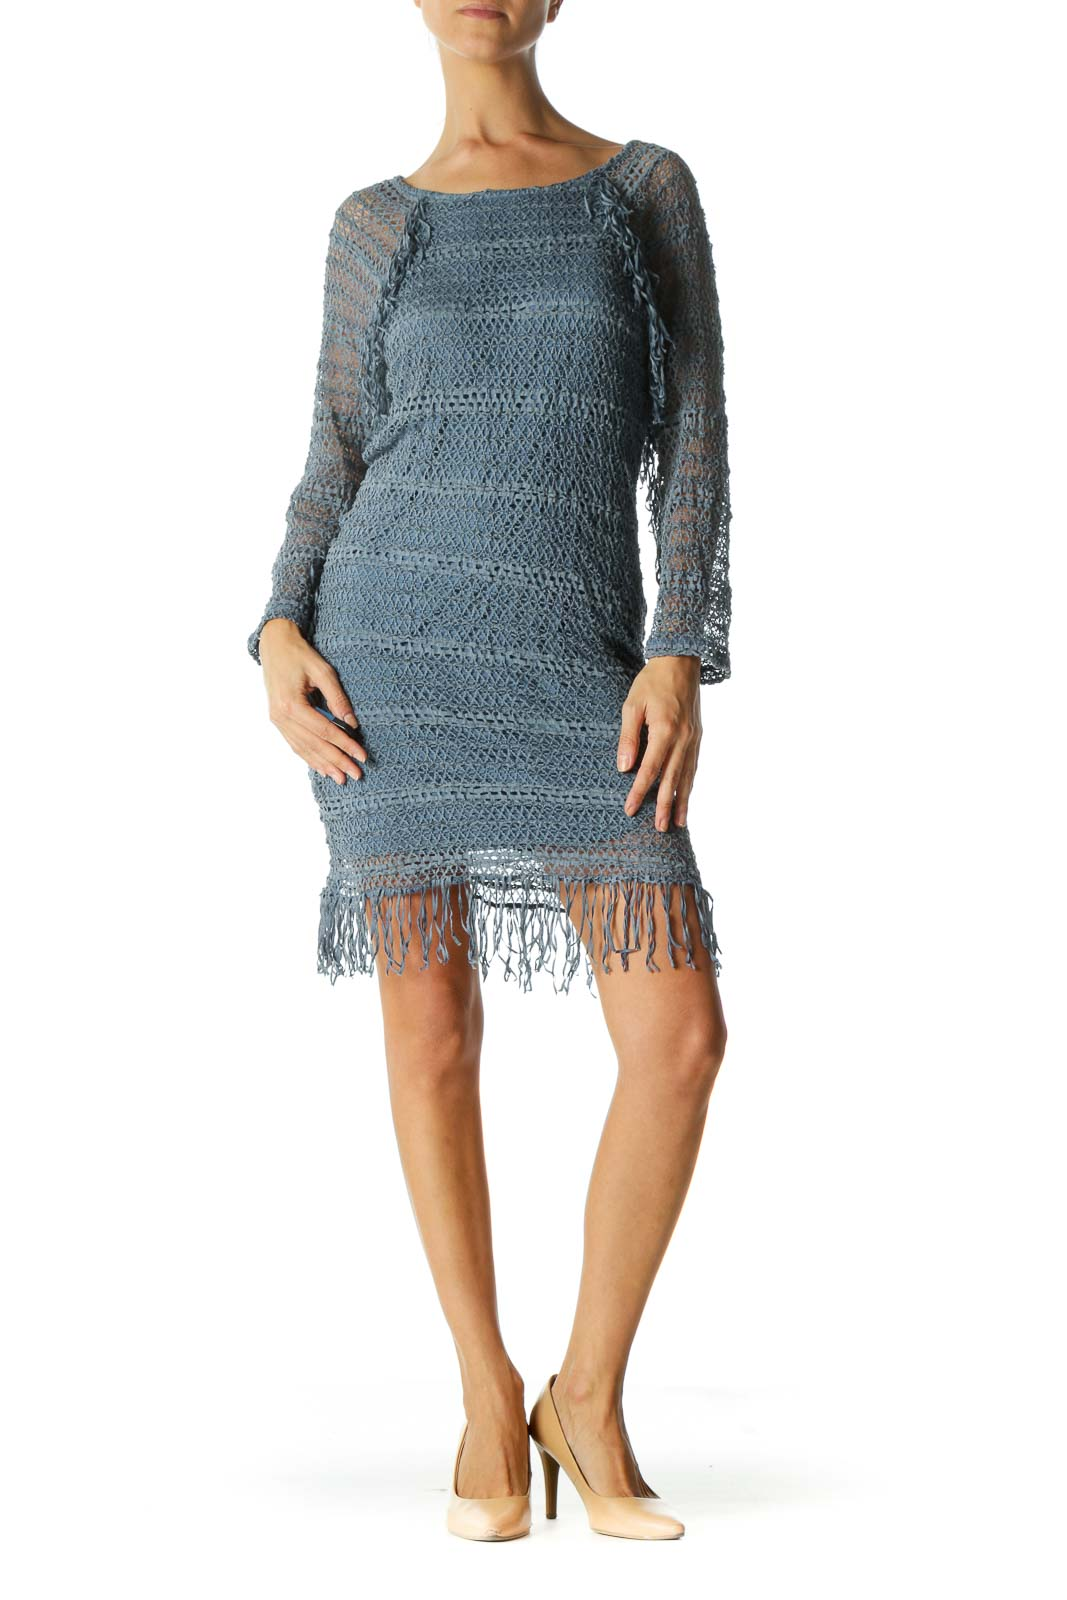 Blue Round Neck Stretch Knit Fringe Detail Dress